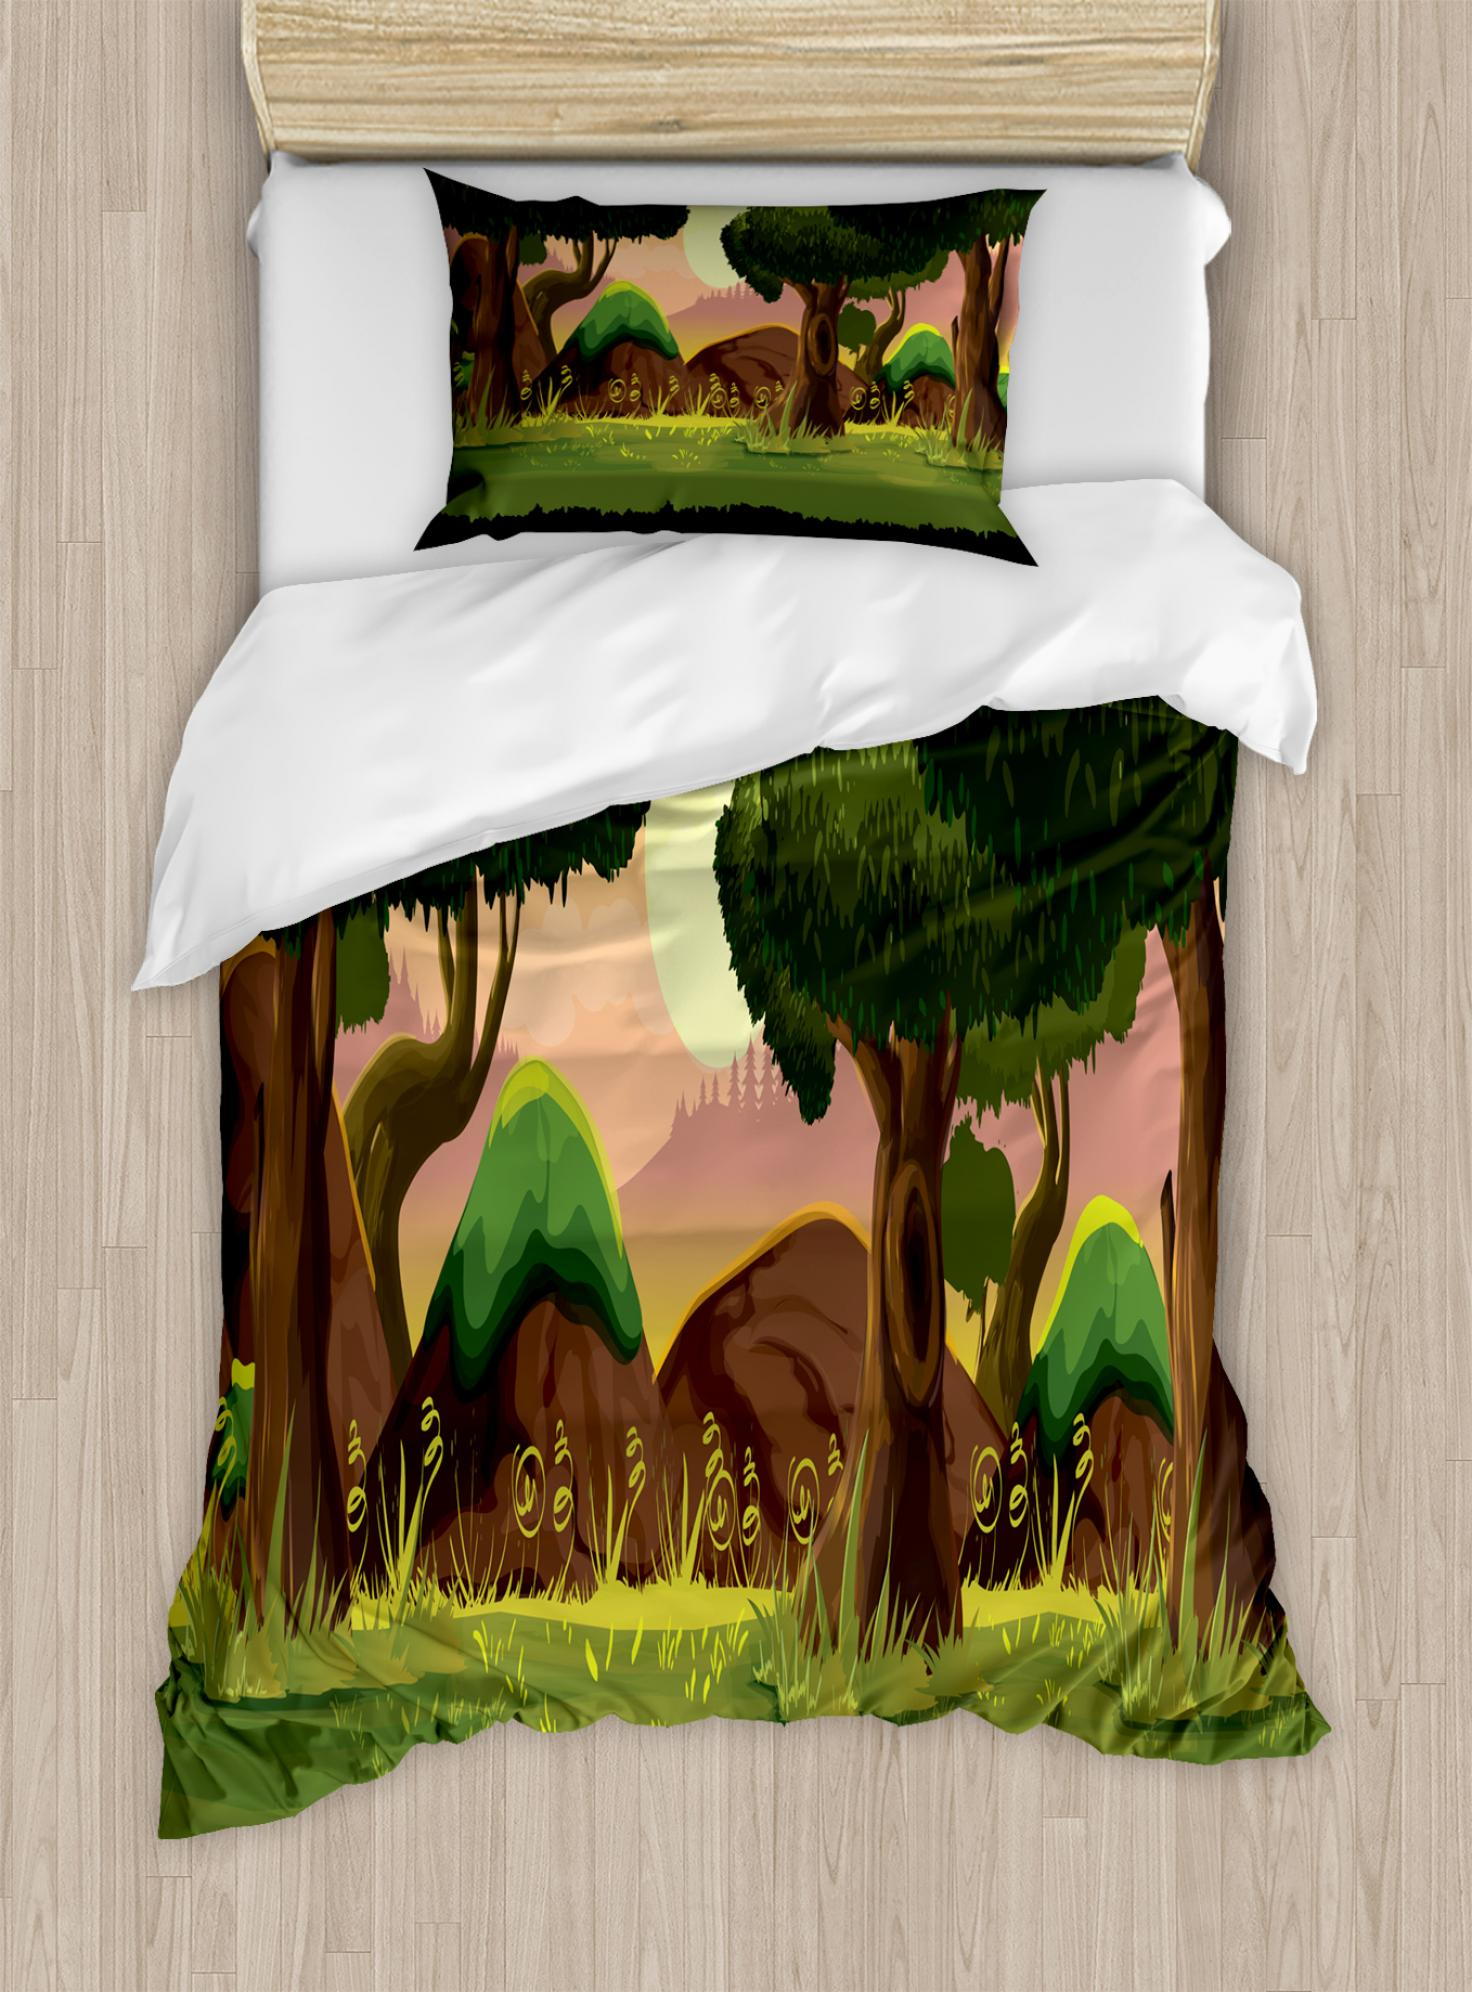 Forest Duvet Cover Set Twin Size, Animation Game Scenery